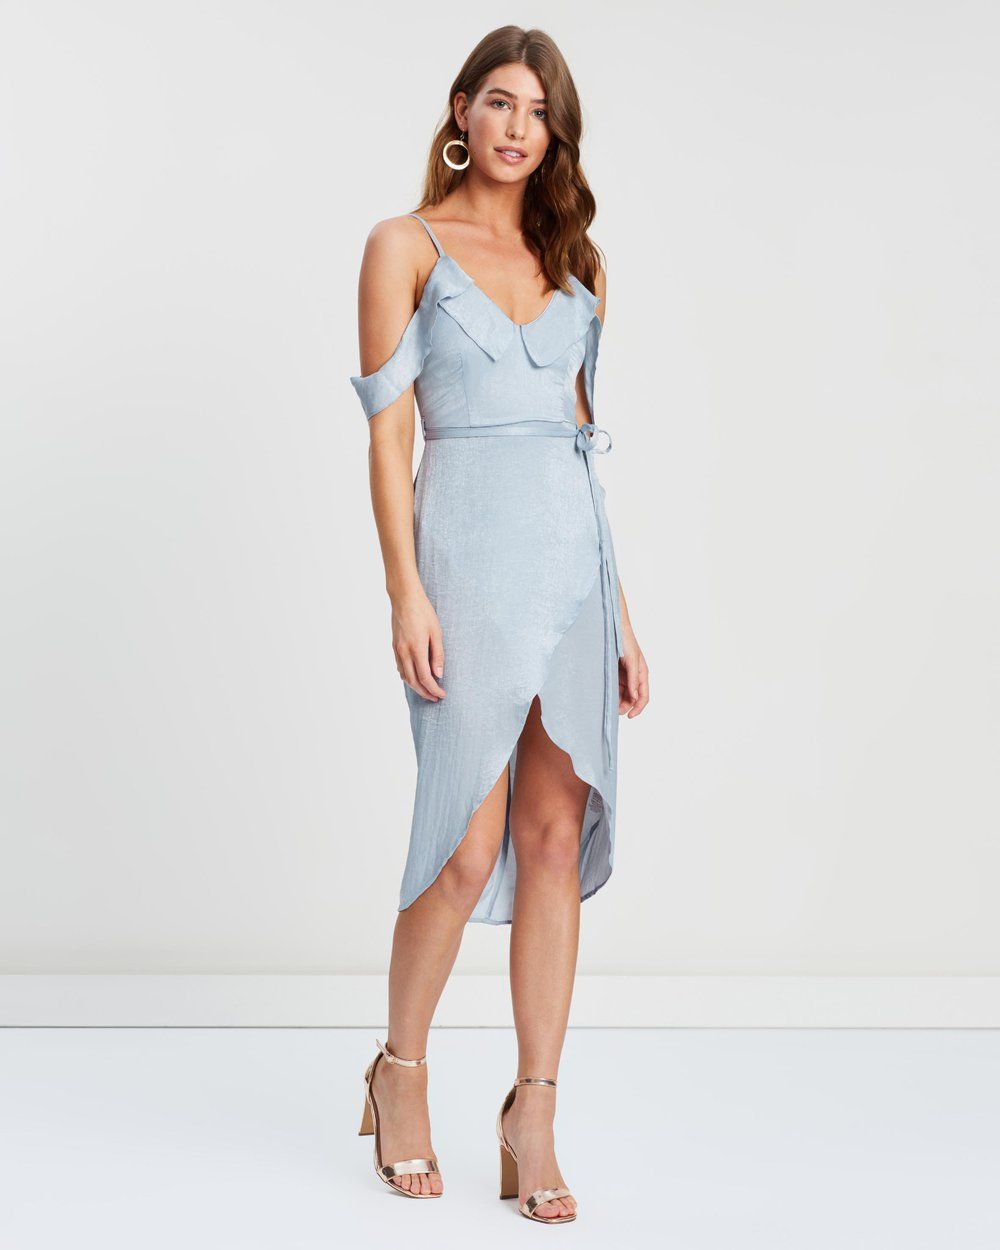 443a13c4e2c6d Buy Satin Frill Midi Dress by Missguided online at THE ICONIC. Free and  fast delivery to Australia and New Zealand.